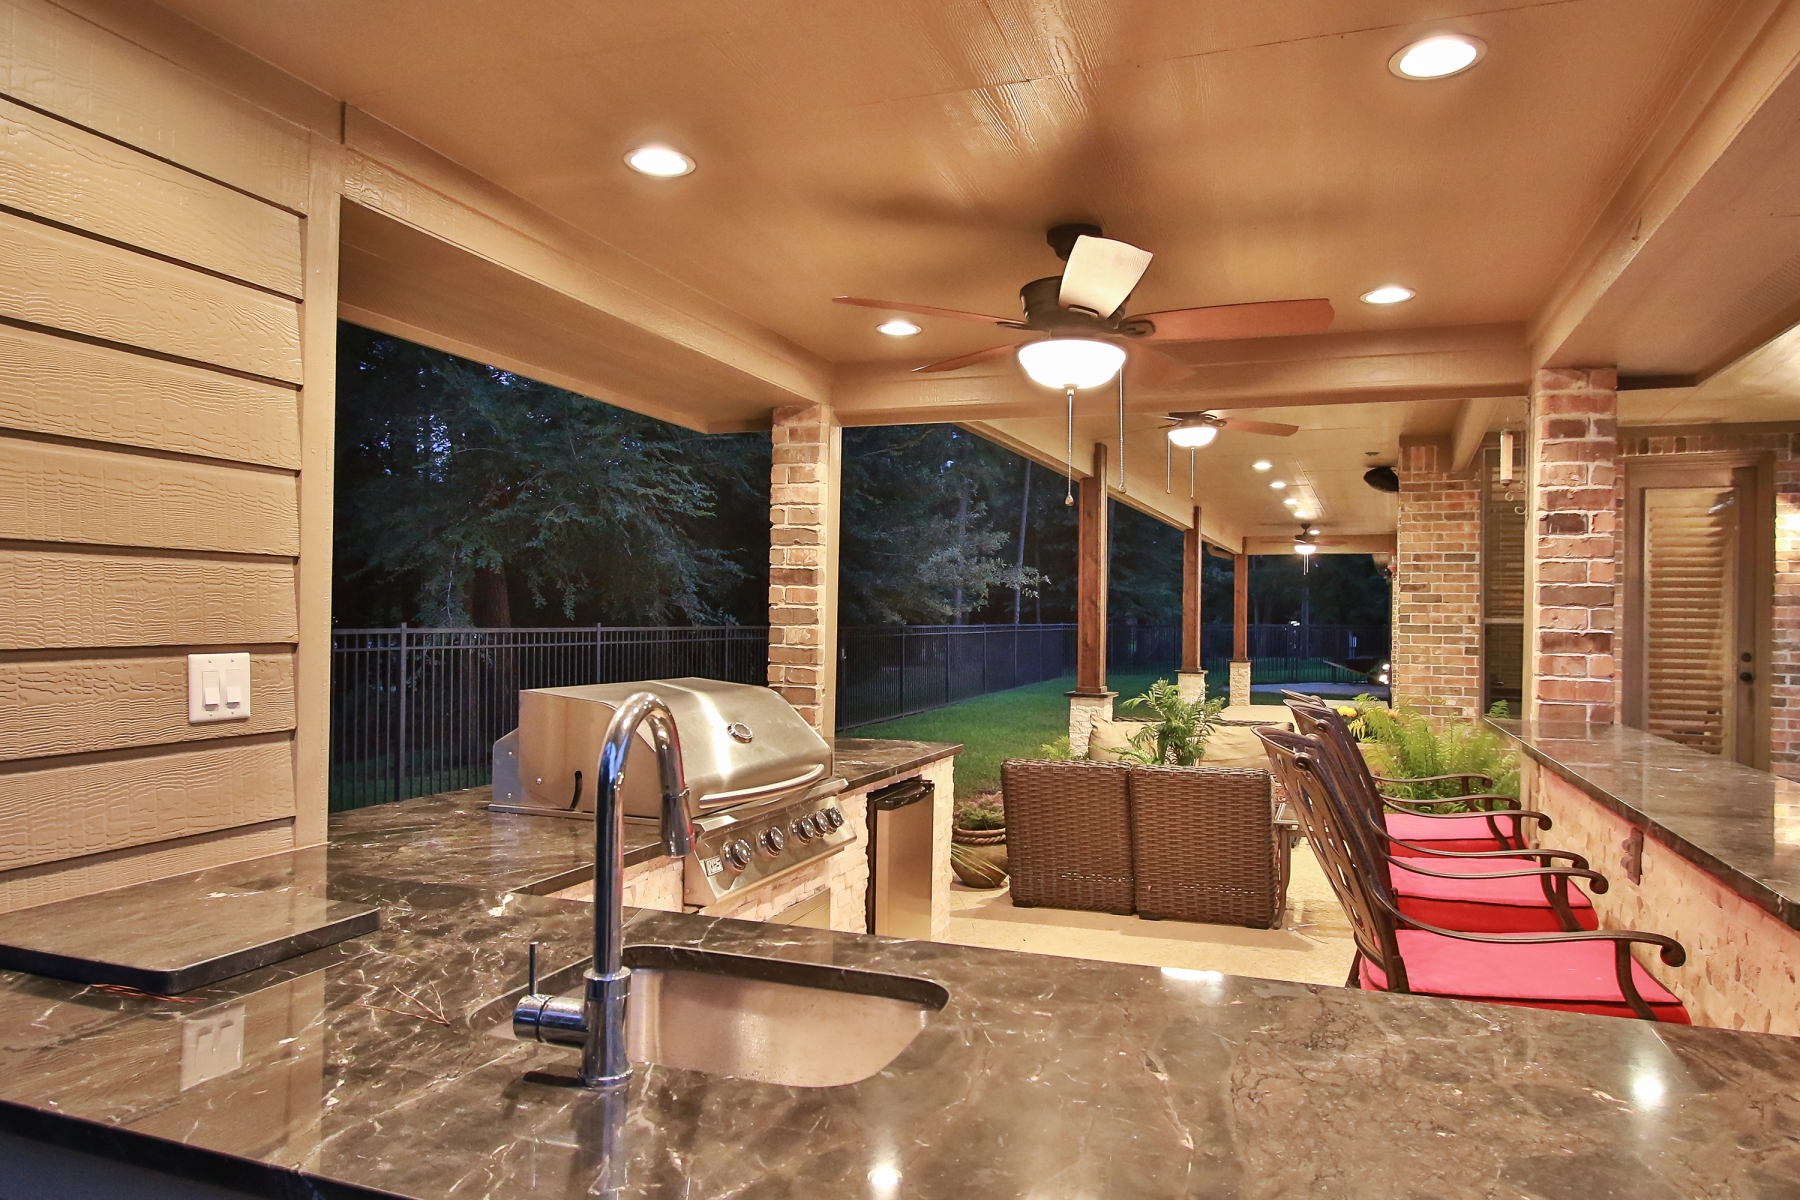 Outdoor Kitchen & Covered Patio